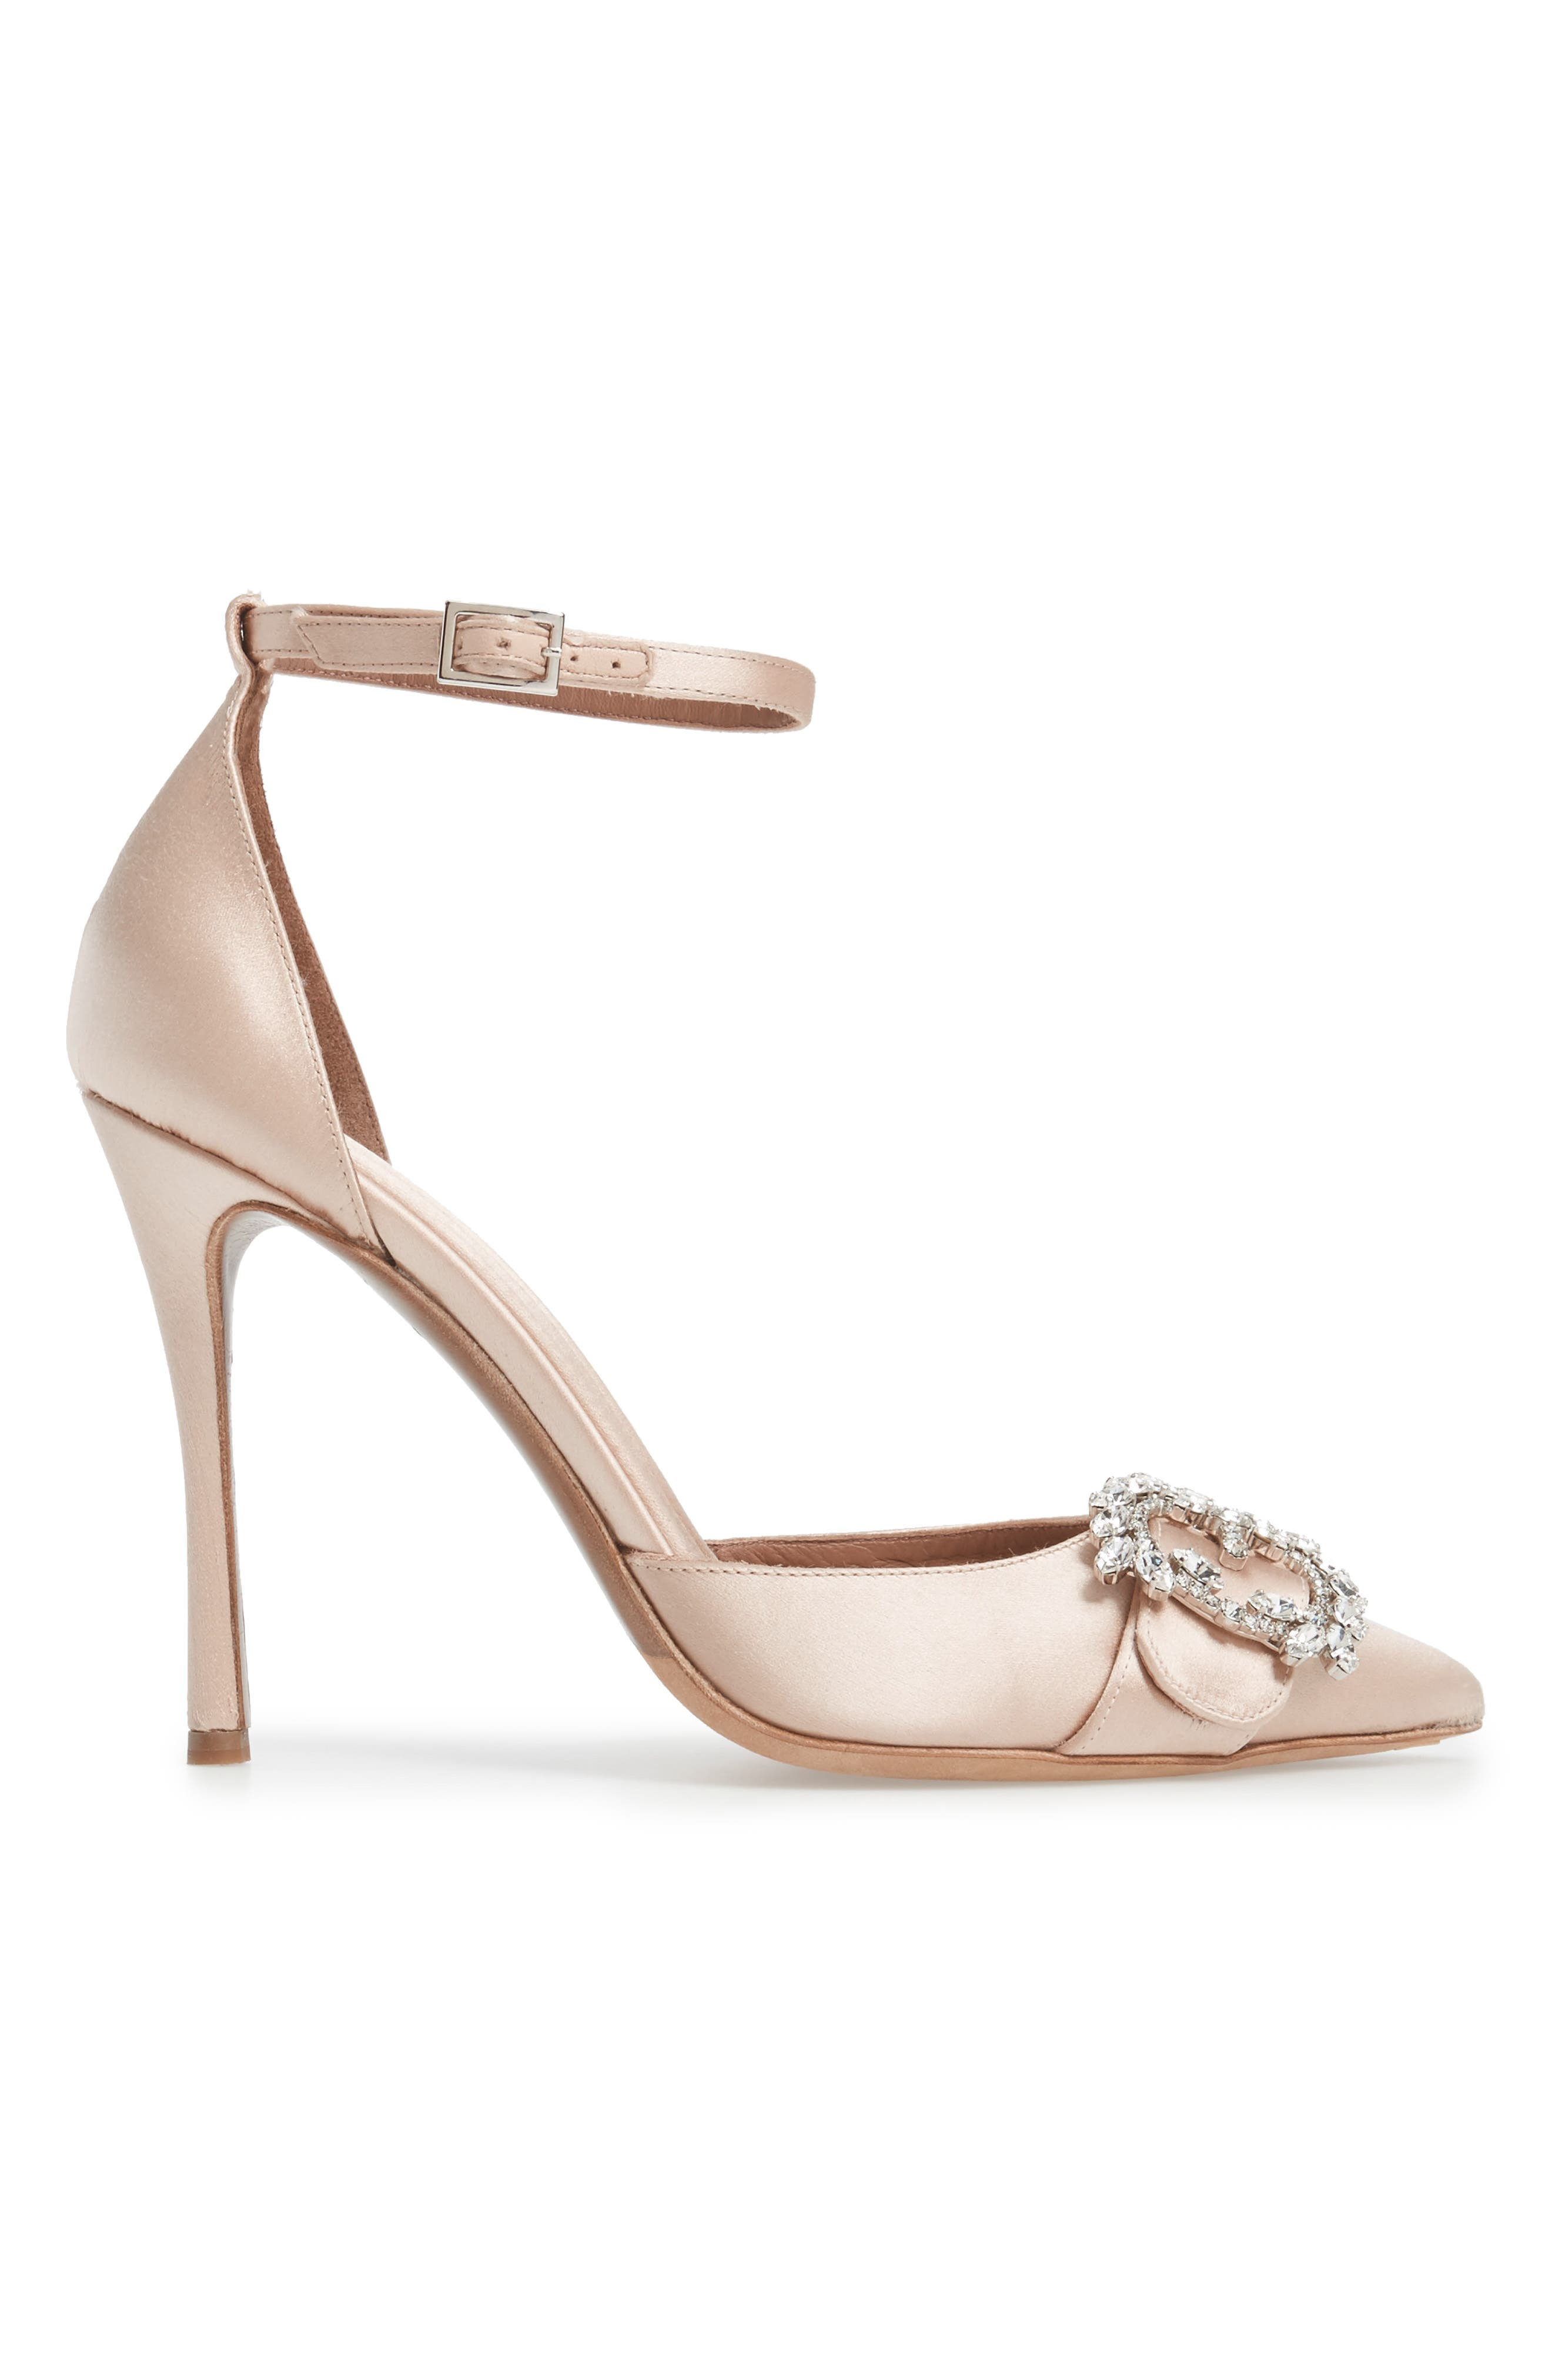 Alternate Image 3  - Tabitha Simmons Tie The Knot Crystal Buckle Pump (Women)